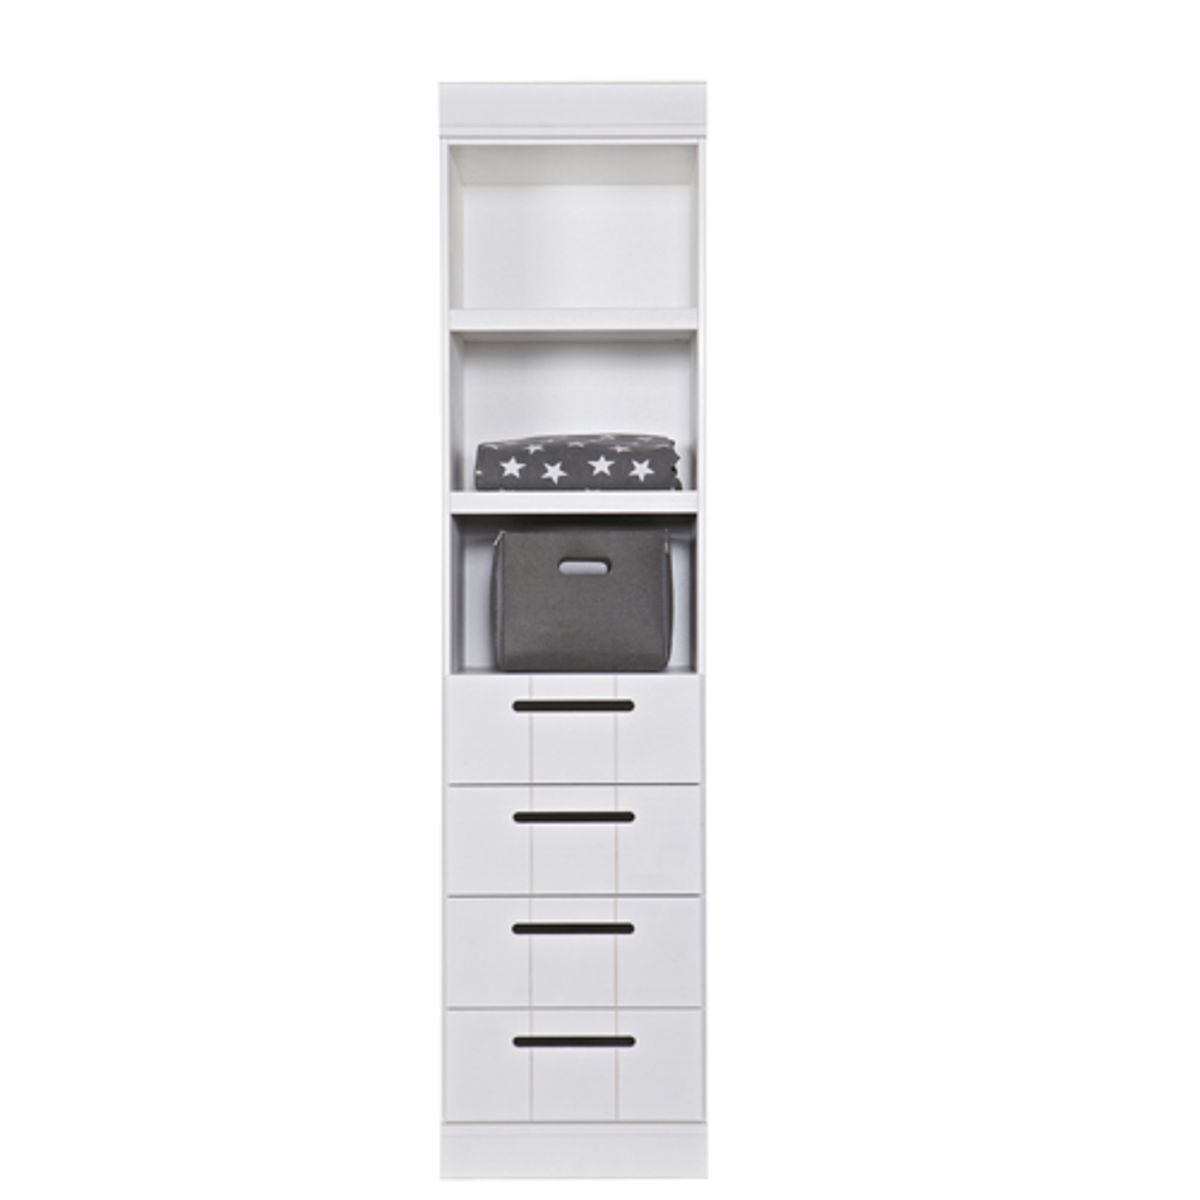 Etagère colonne 4 tiroirs 3 niches en pin Connect -Blanc